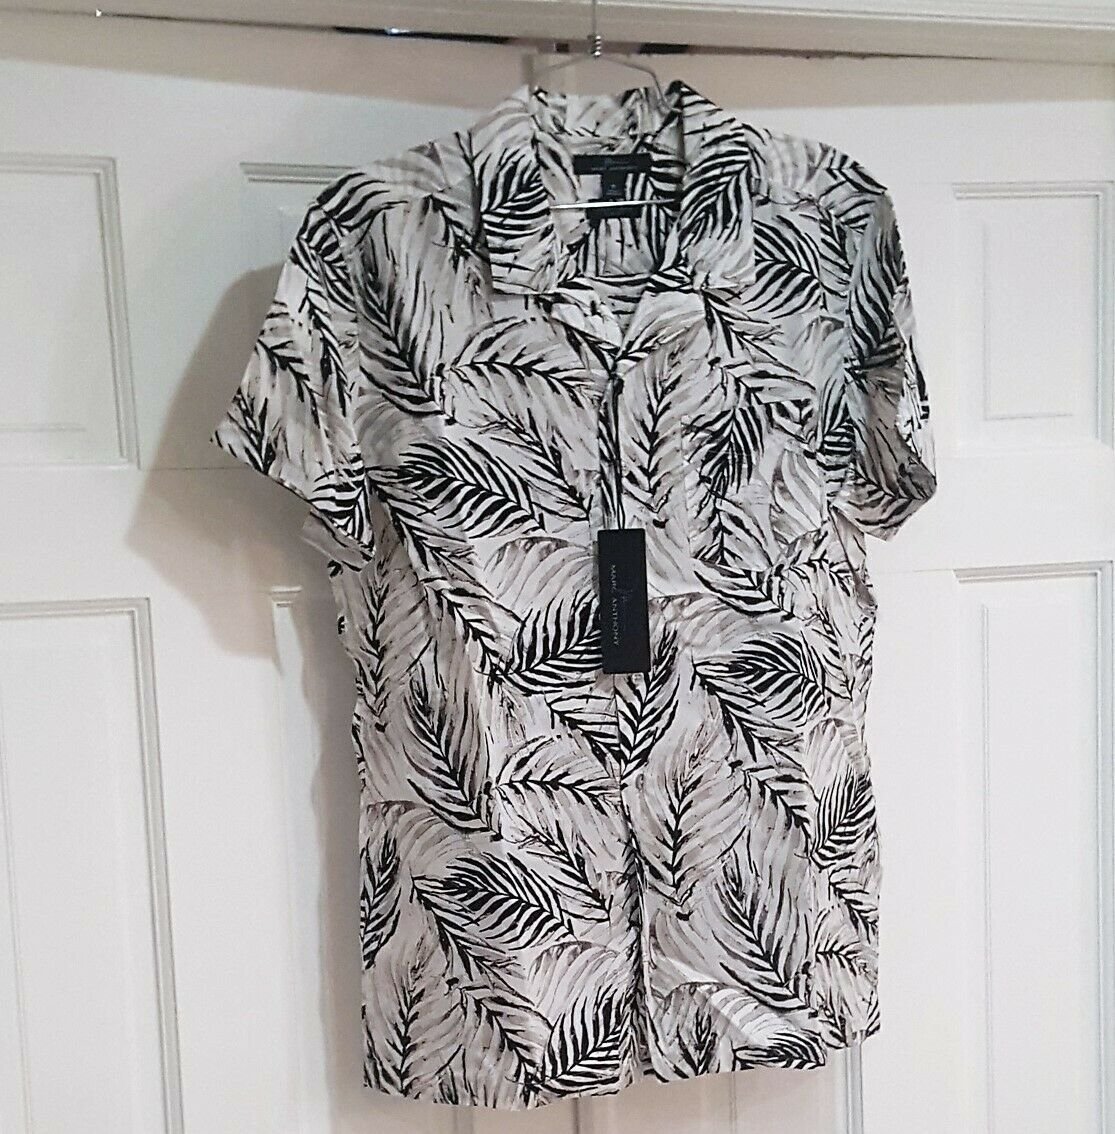 Primary image for MEN'S MARC ANTHONY SLIM FIT SUMMER SHIRT WHITH , BLACK AND BEIGE SIZE MEDIUM